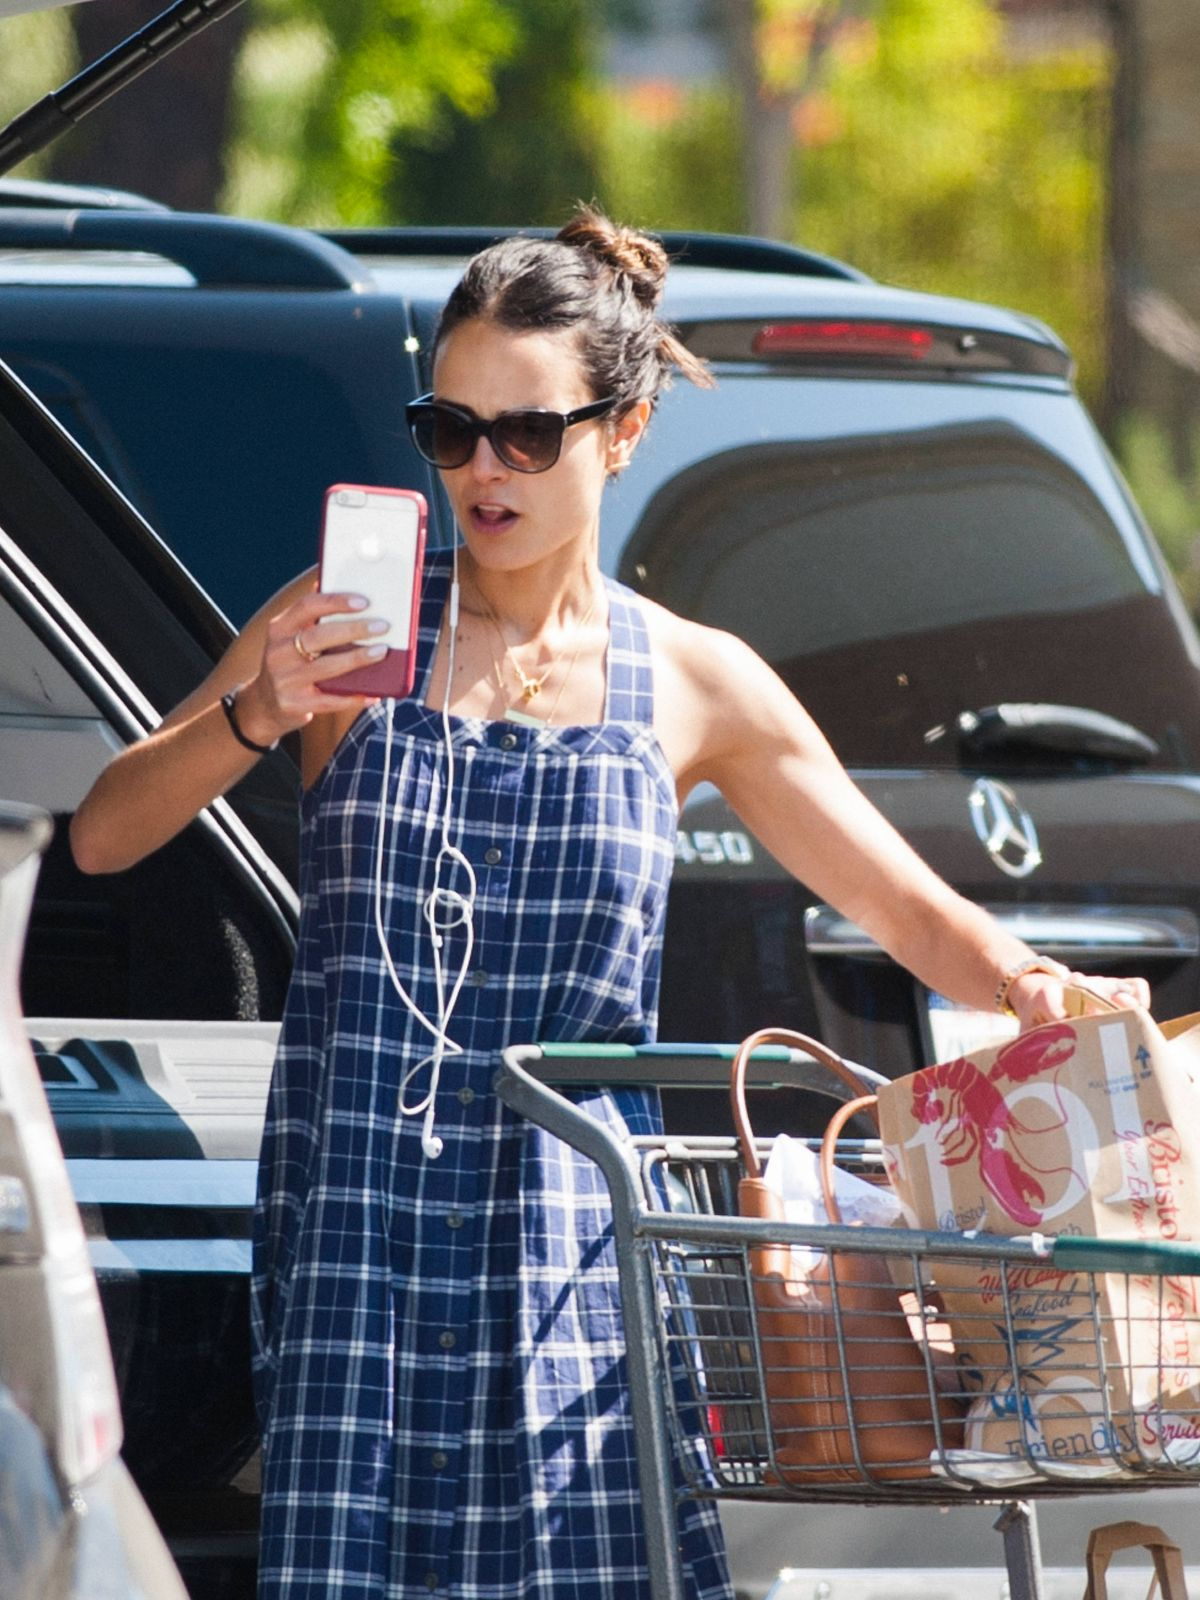 HQ Photos of 'Fast and Furious 8' actress Jordana Brewster Out for Shopping In Beverly Hills